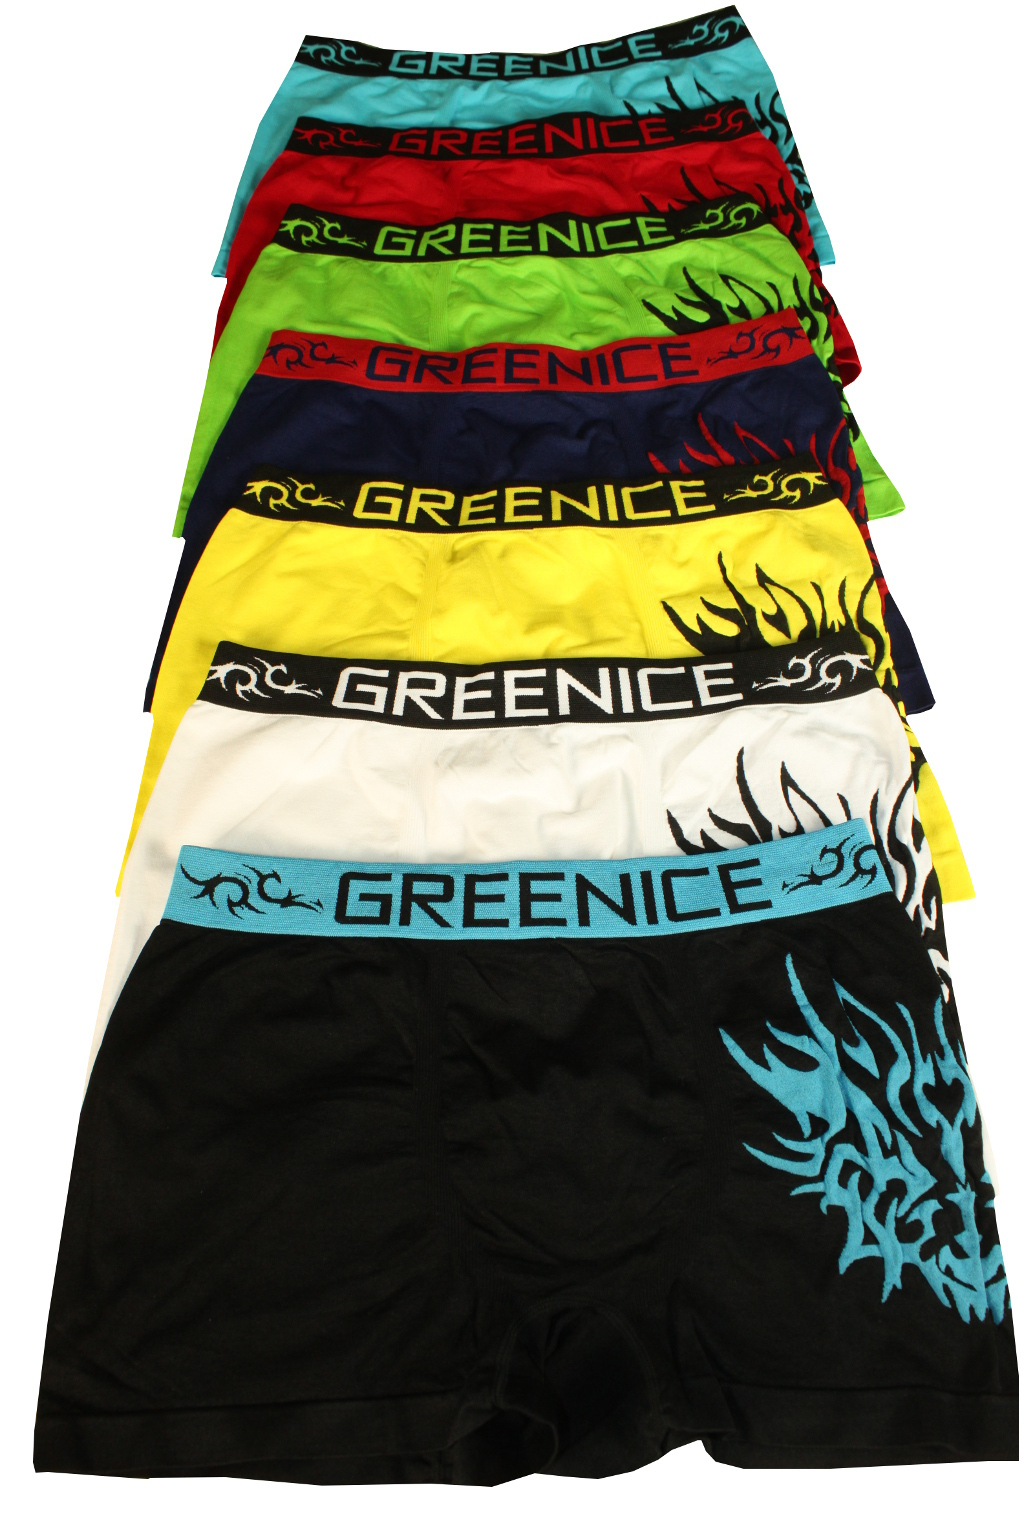 Greenice Fire boxerky - 3pack XL MIX